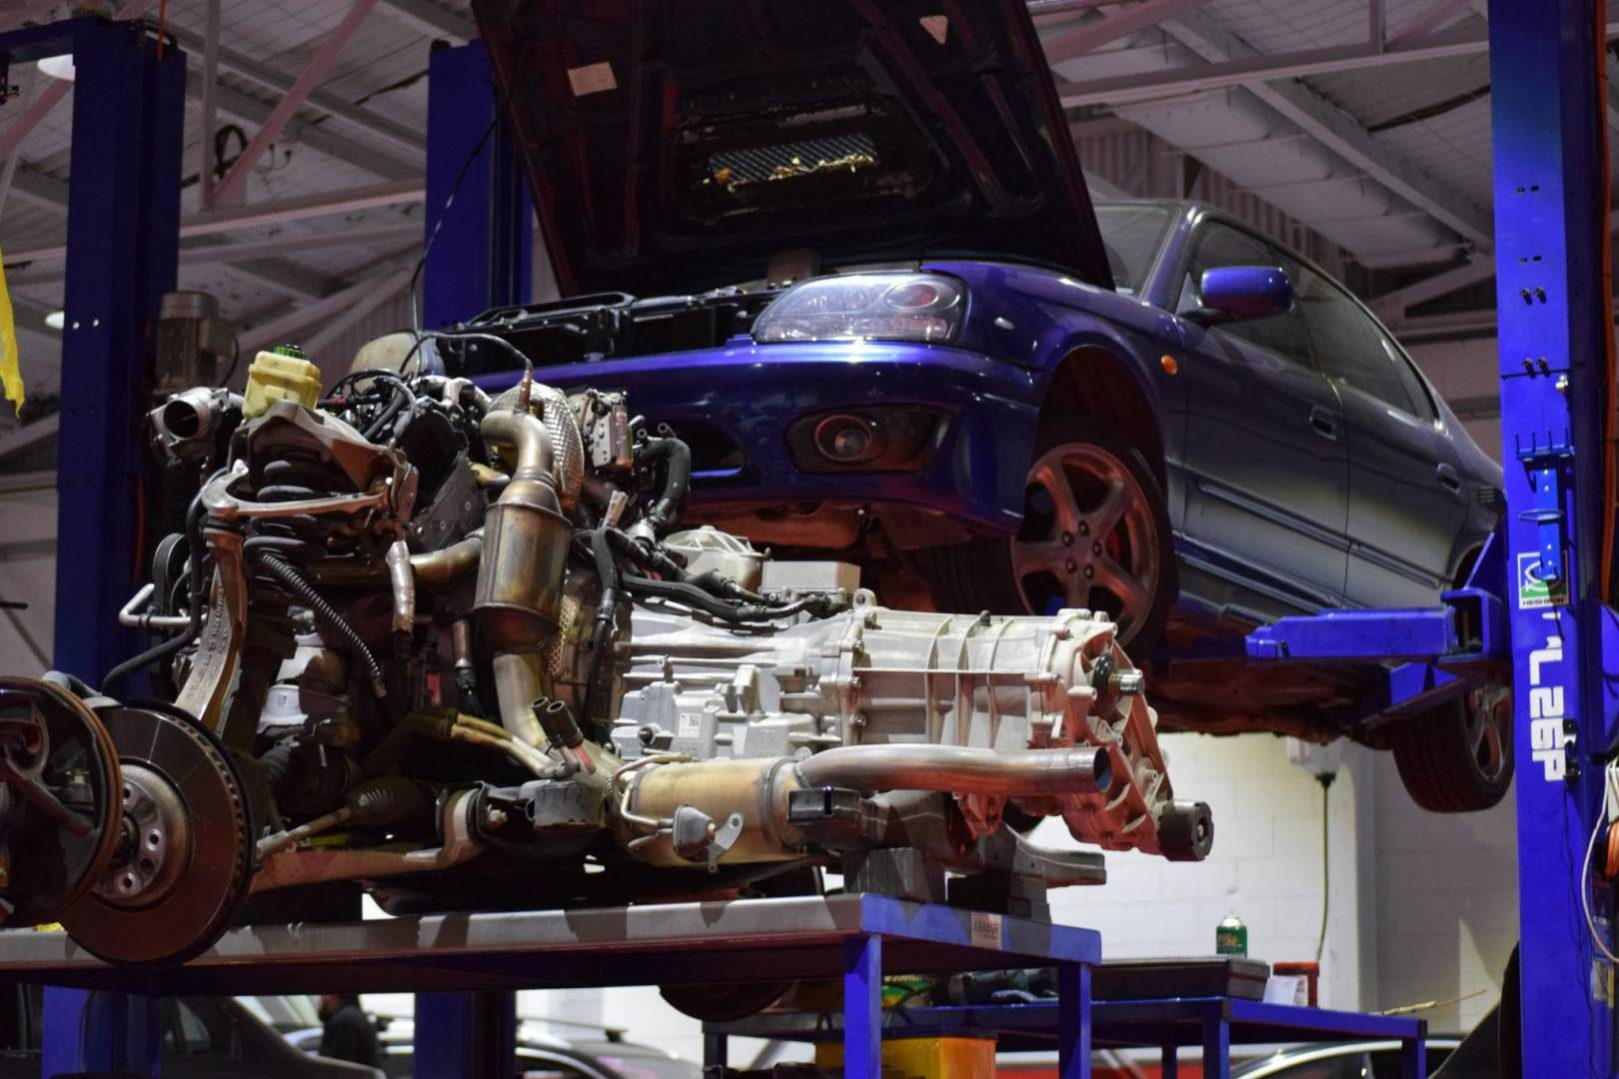 engine-auto-repair-sydney-workshop